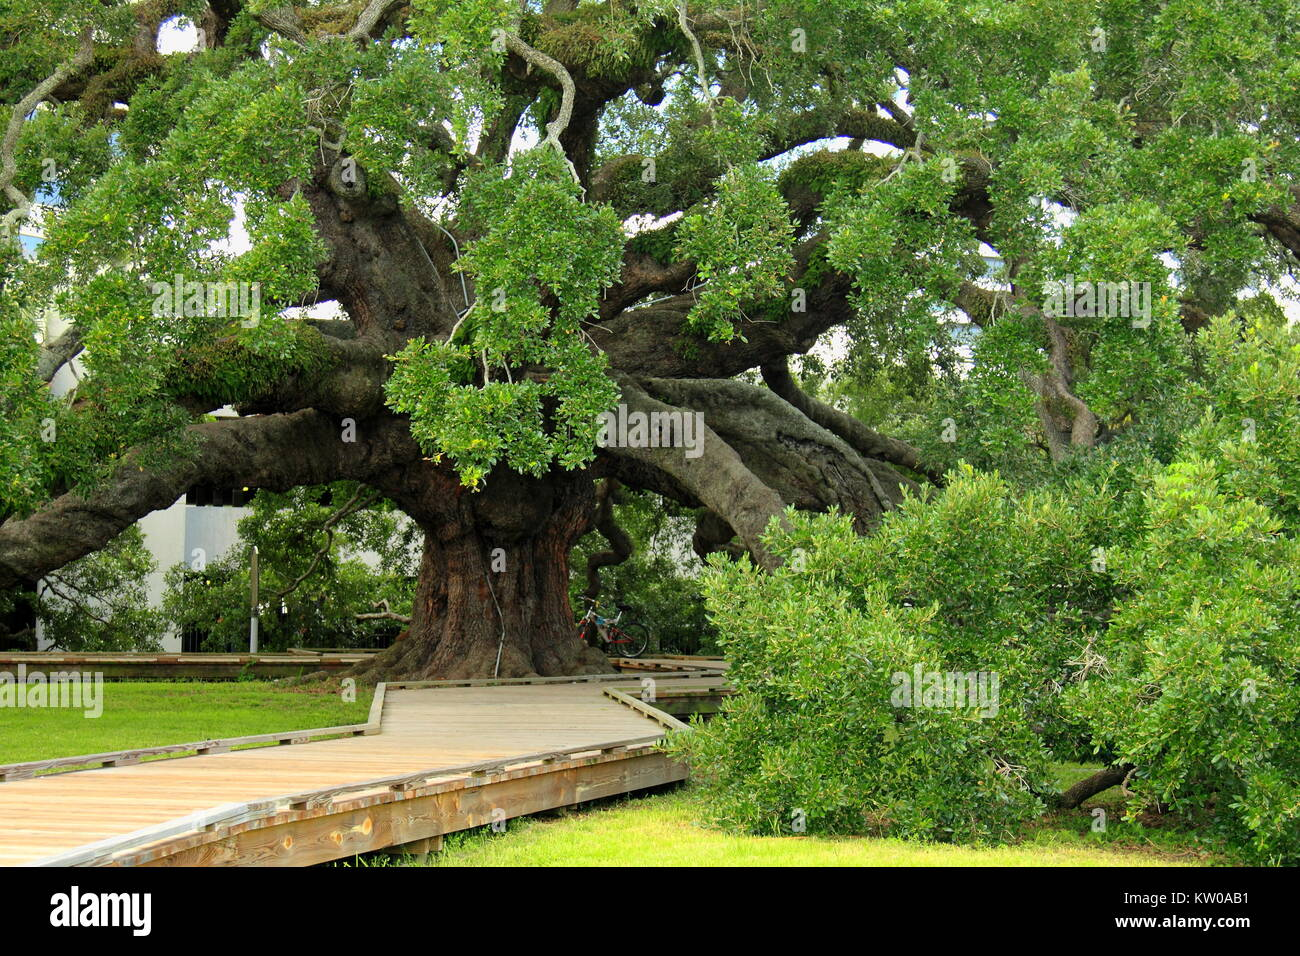 Famous mighty ancient oak in Jacksonville, Florida - Stock Image